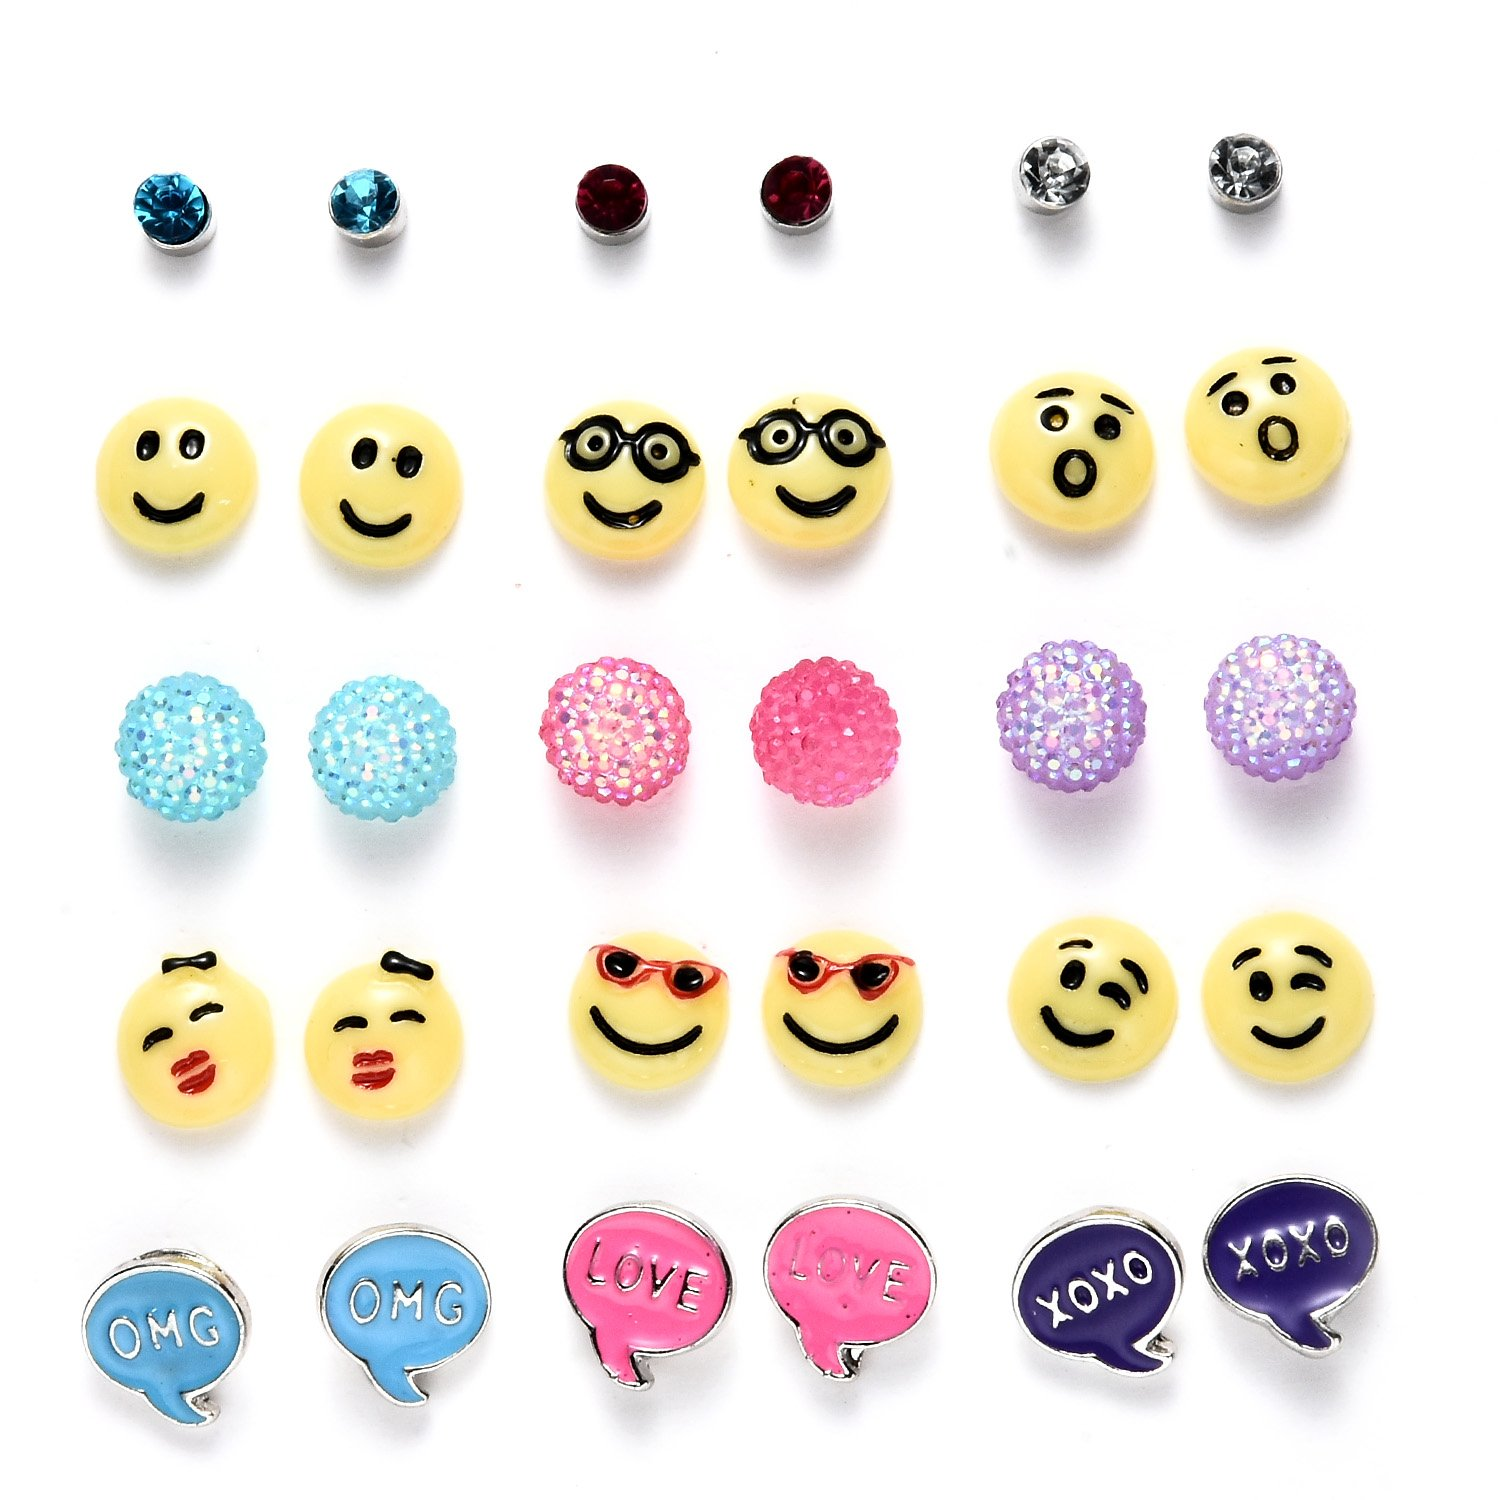 15 Pairs Hypoallergenic Cute Amusing Smiley Emoticon Stud Earrings Set for Girls